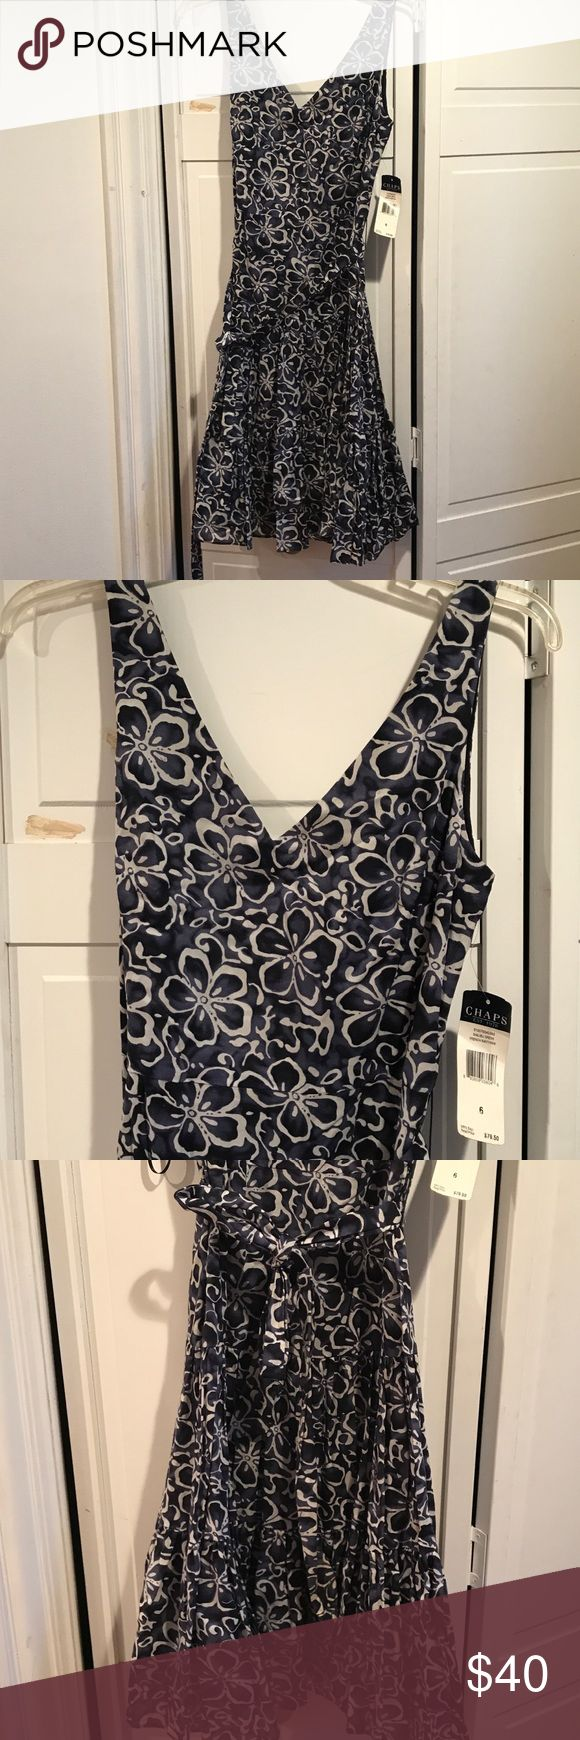 Chaps Navy and White Floral dress Blue and white floral dress. Very fitted on top but no cleavage and flows very lovely around the legs. Demure but very flattering dress for any occasion Chaps Dresses Midi